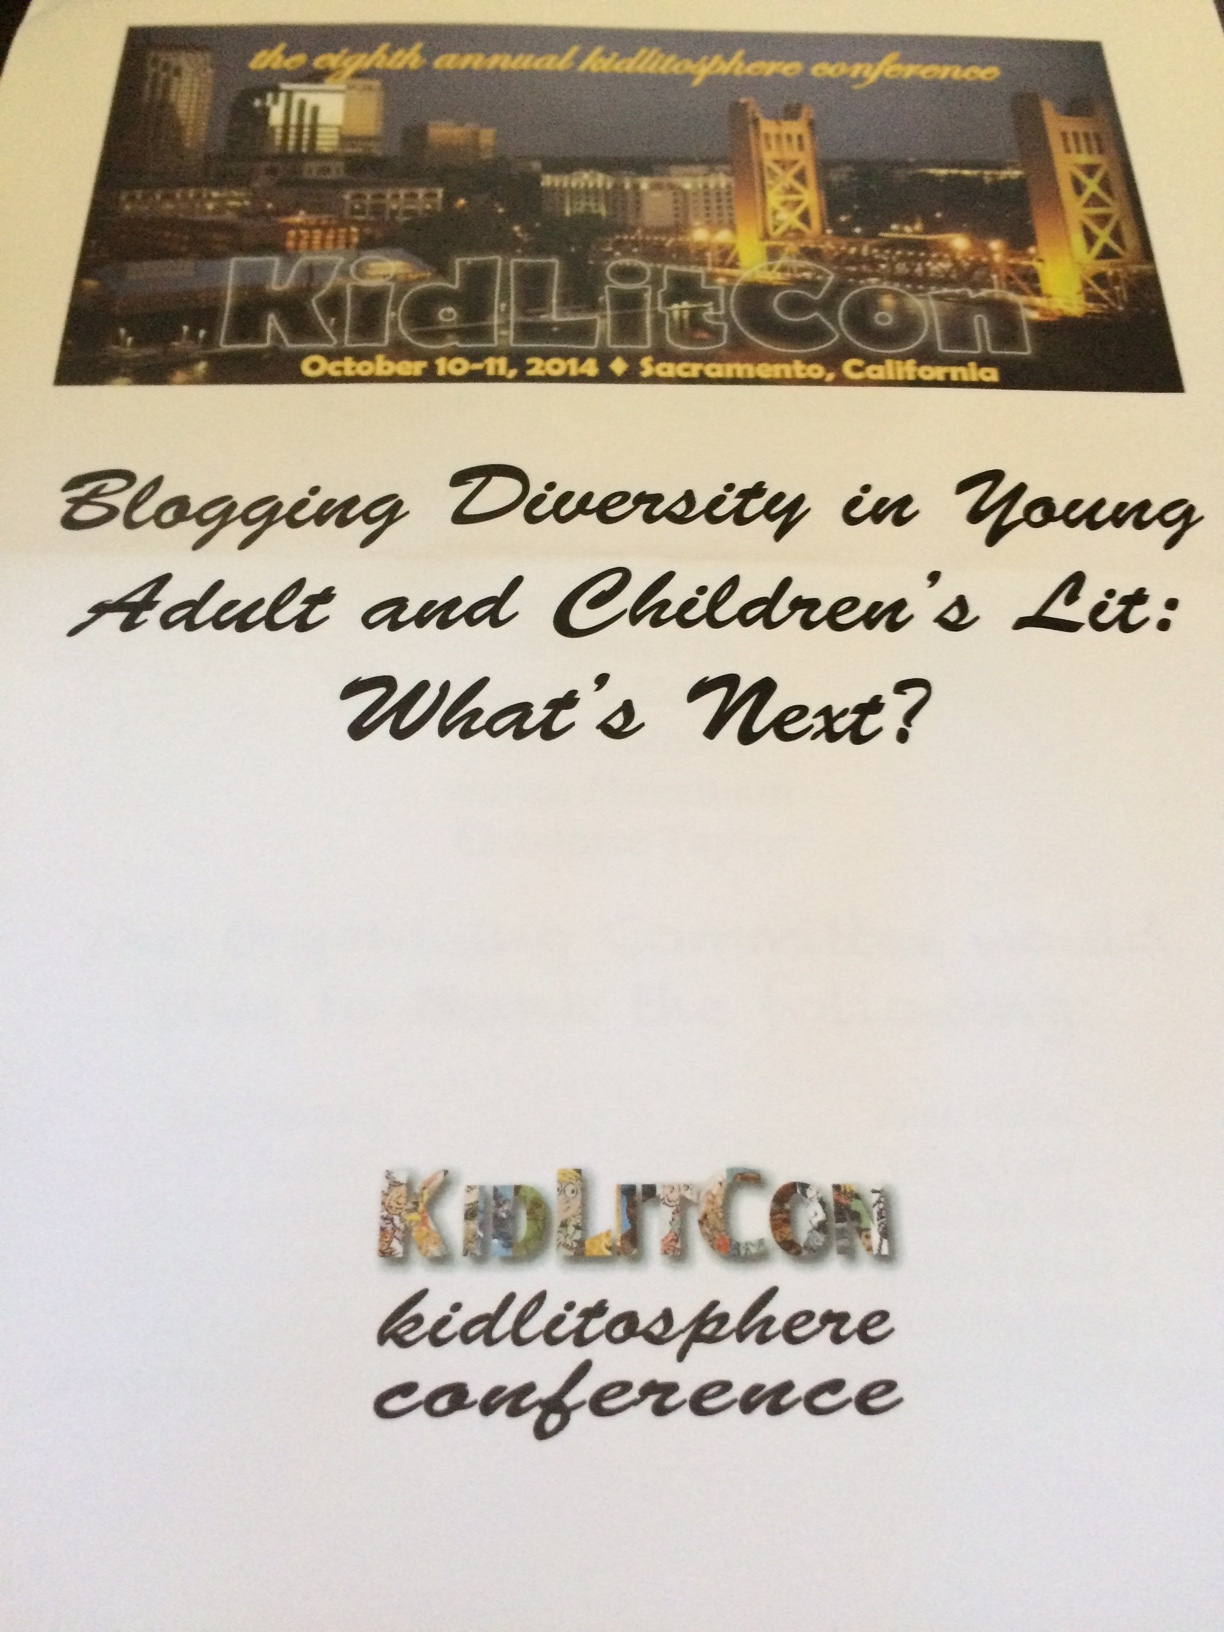 A Focus on Diversity and Savvy Blogging Drive KidLitCon 2014